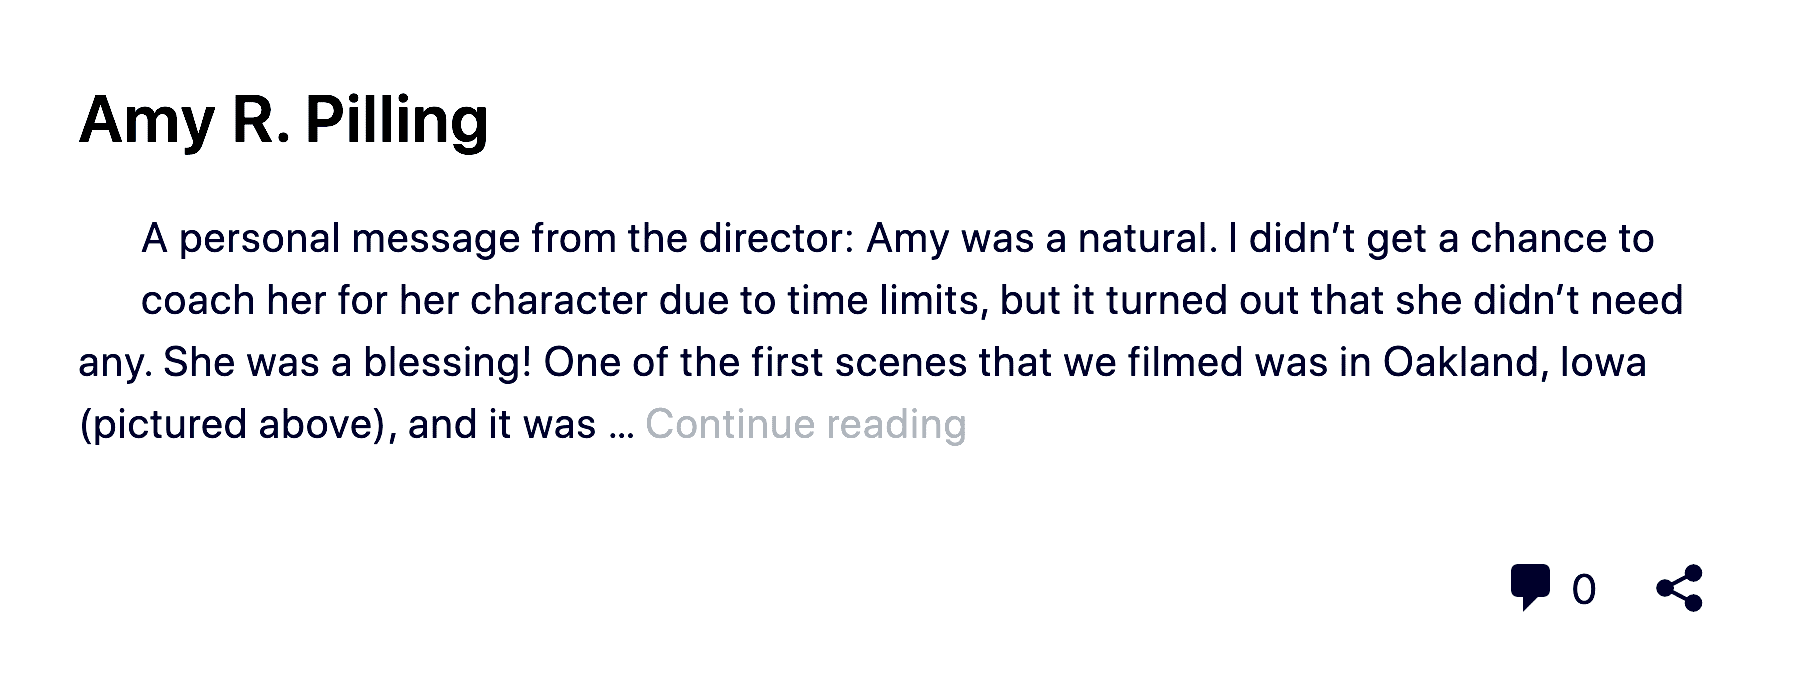 """Apparition"" Movie Actress, Executive and Co-Producer, Amy R. Pilling"